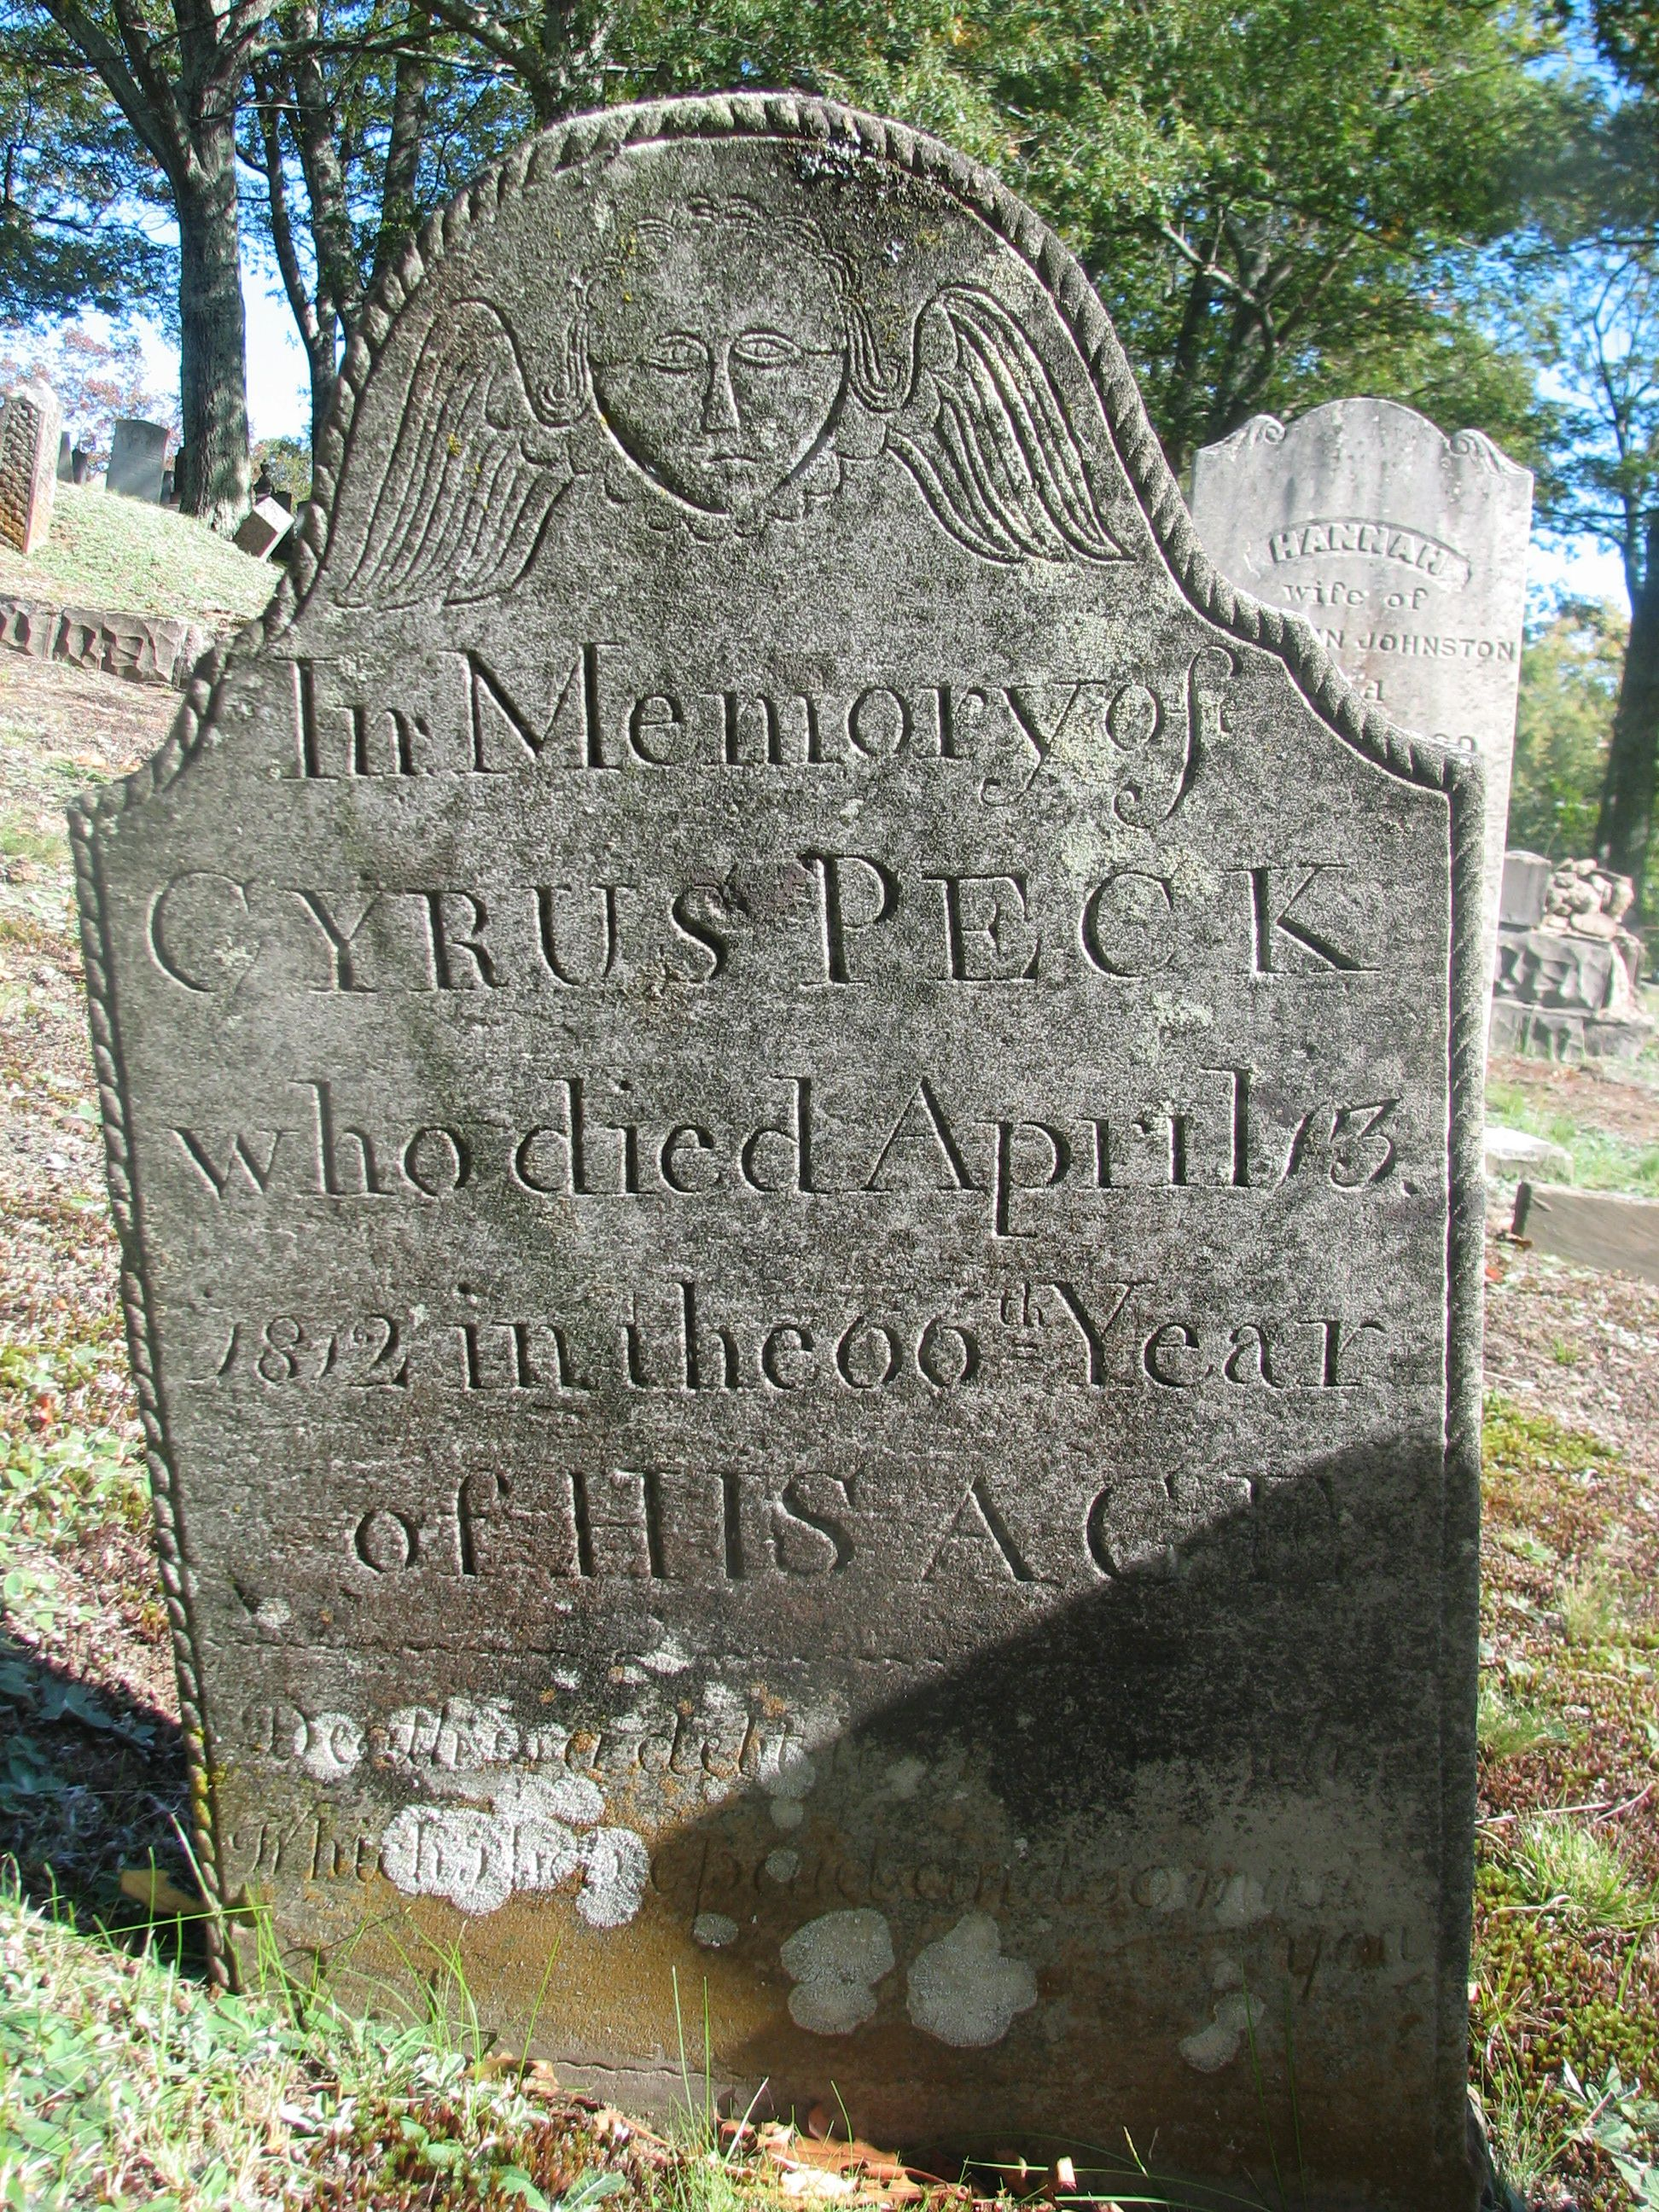 In Memory of CYRUS PECK who died April 13 1812 in the 66th Year of HIS AGE